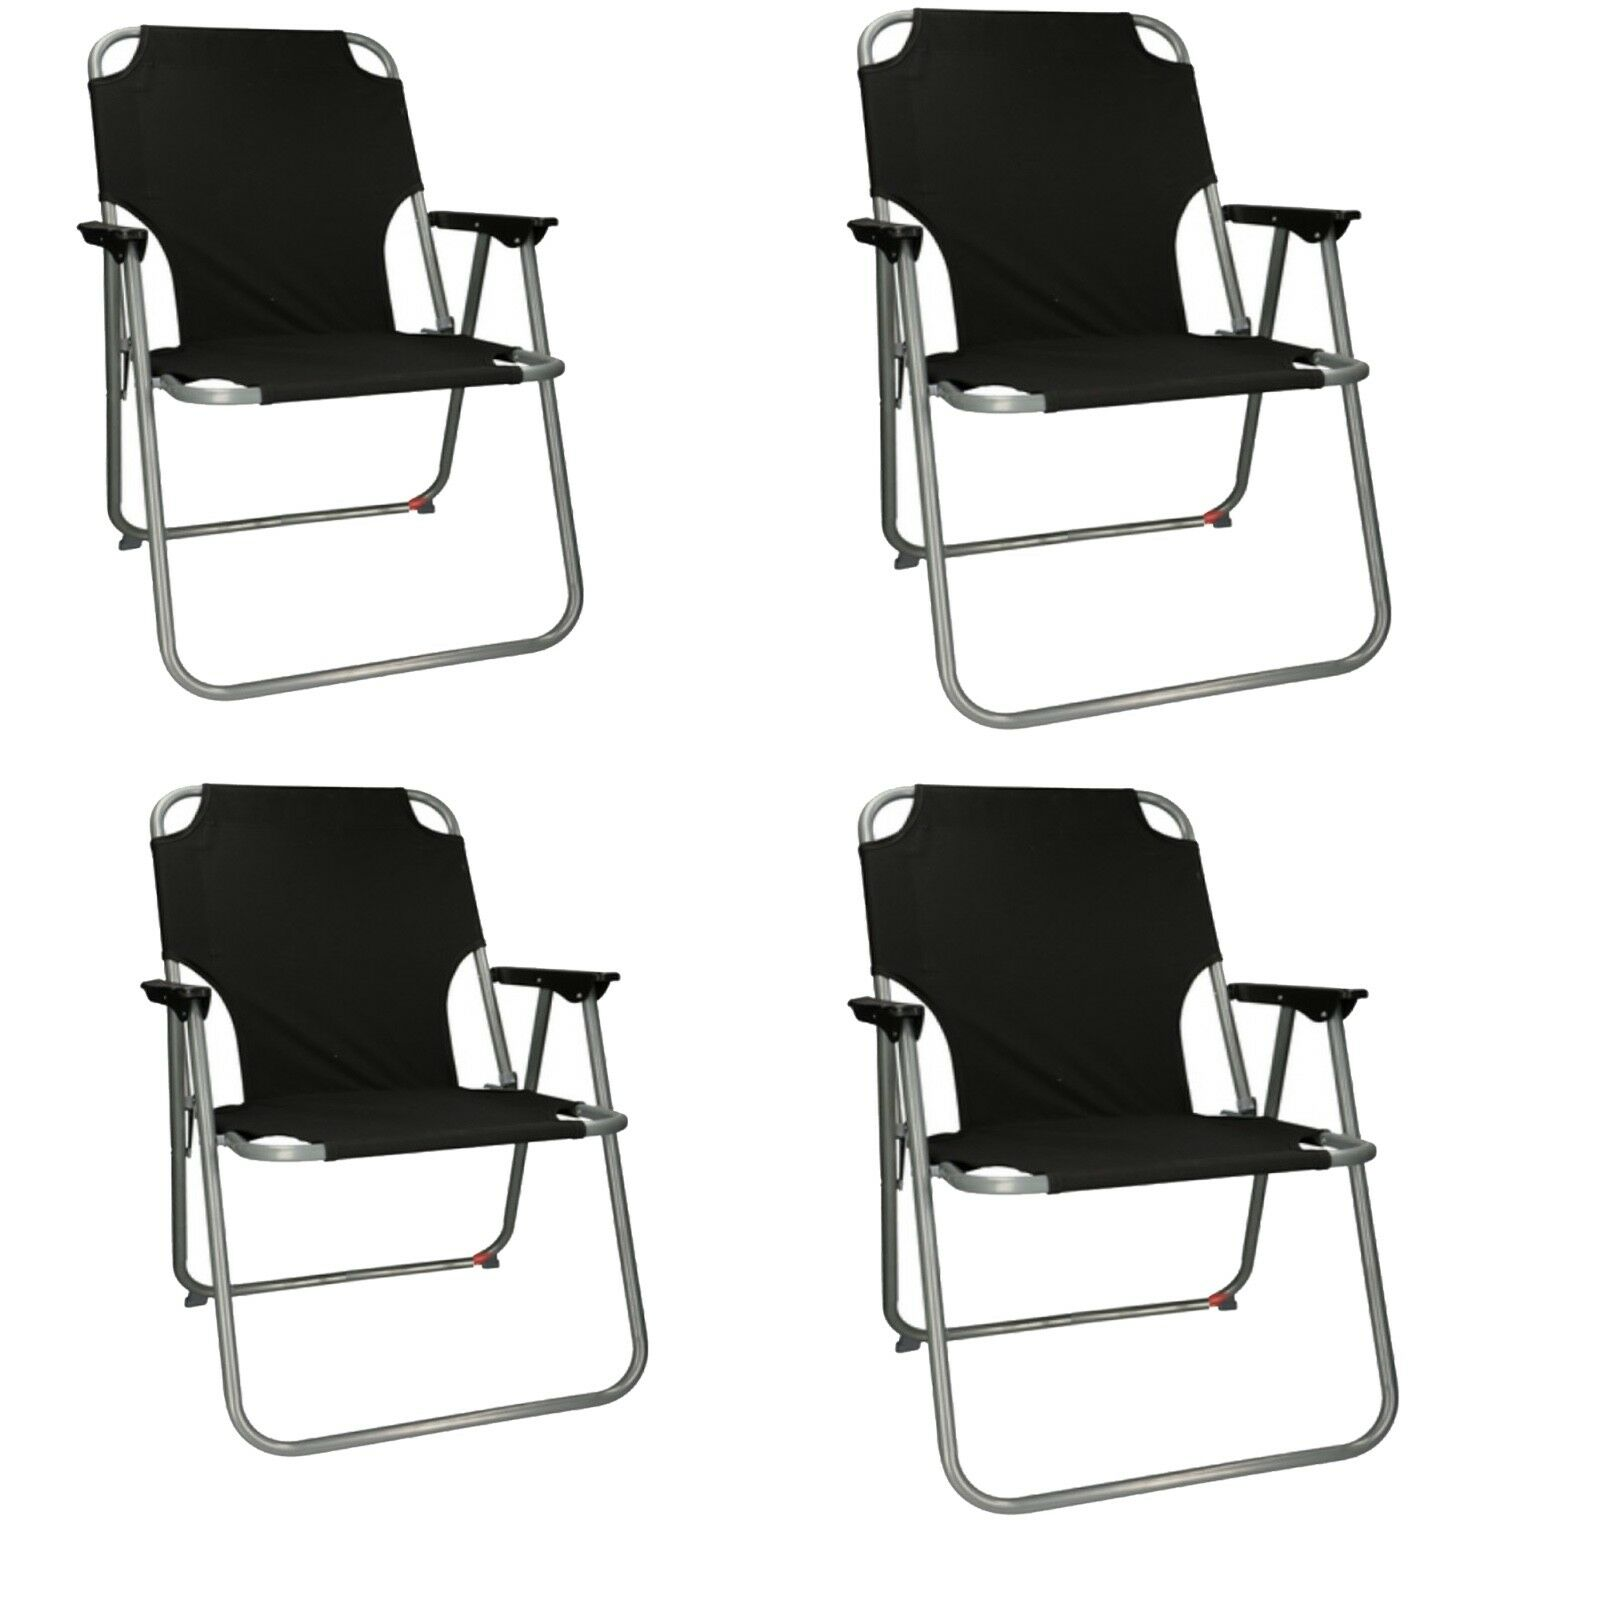 4x Outdoor Portable Folding Chair Camping Hiking Beach Sitz Stool For BBQ Picnic